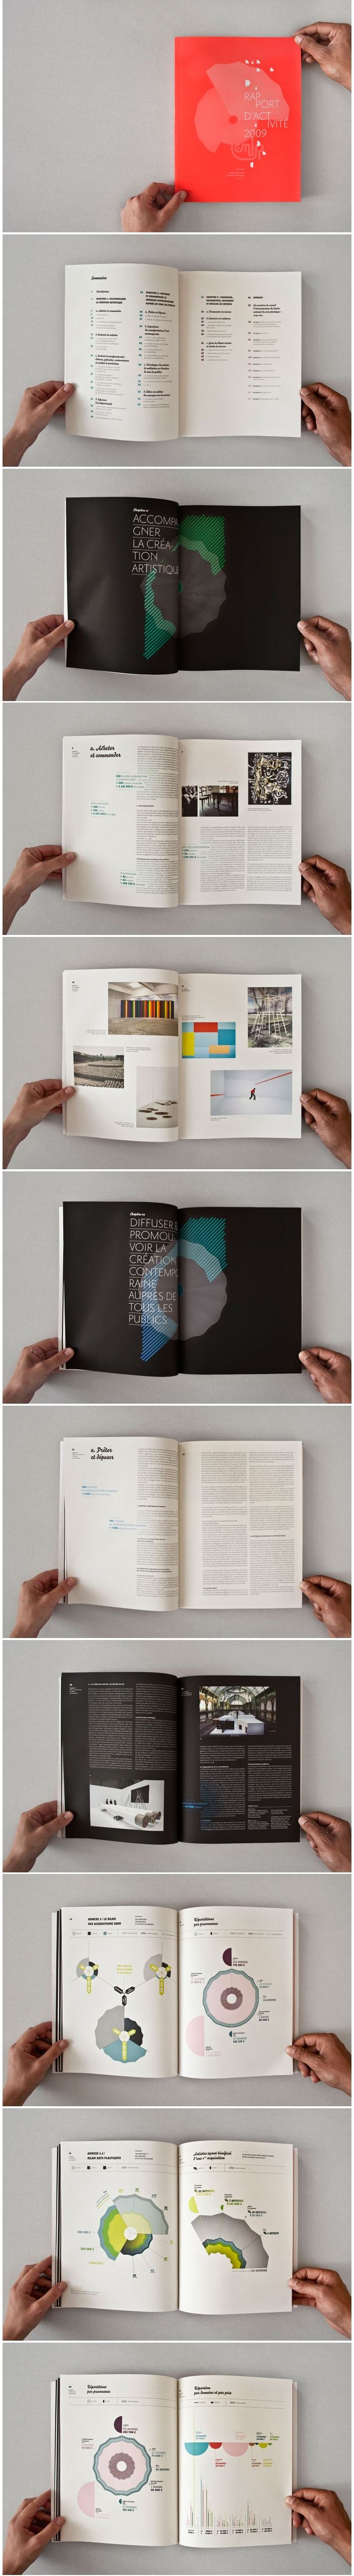 Design of the 2009 annual report  for the National Art Cente. In collaboration with the Graphiquants